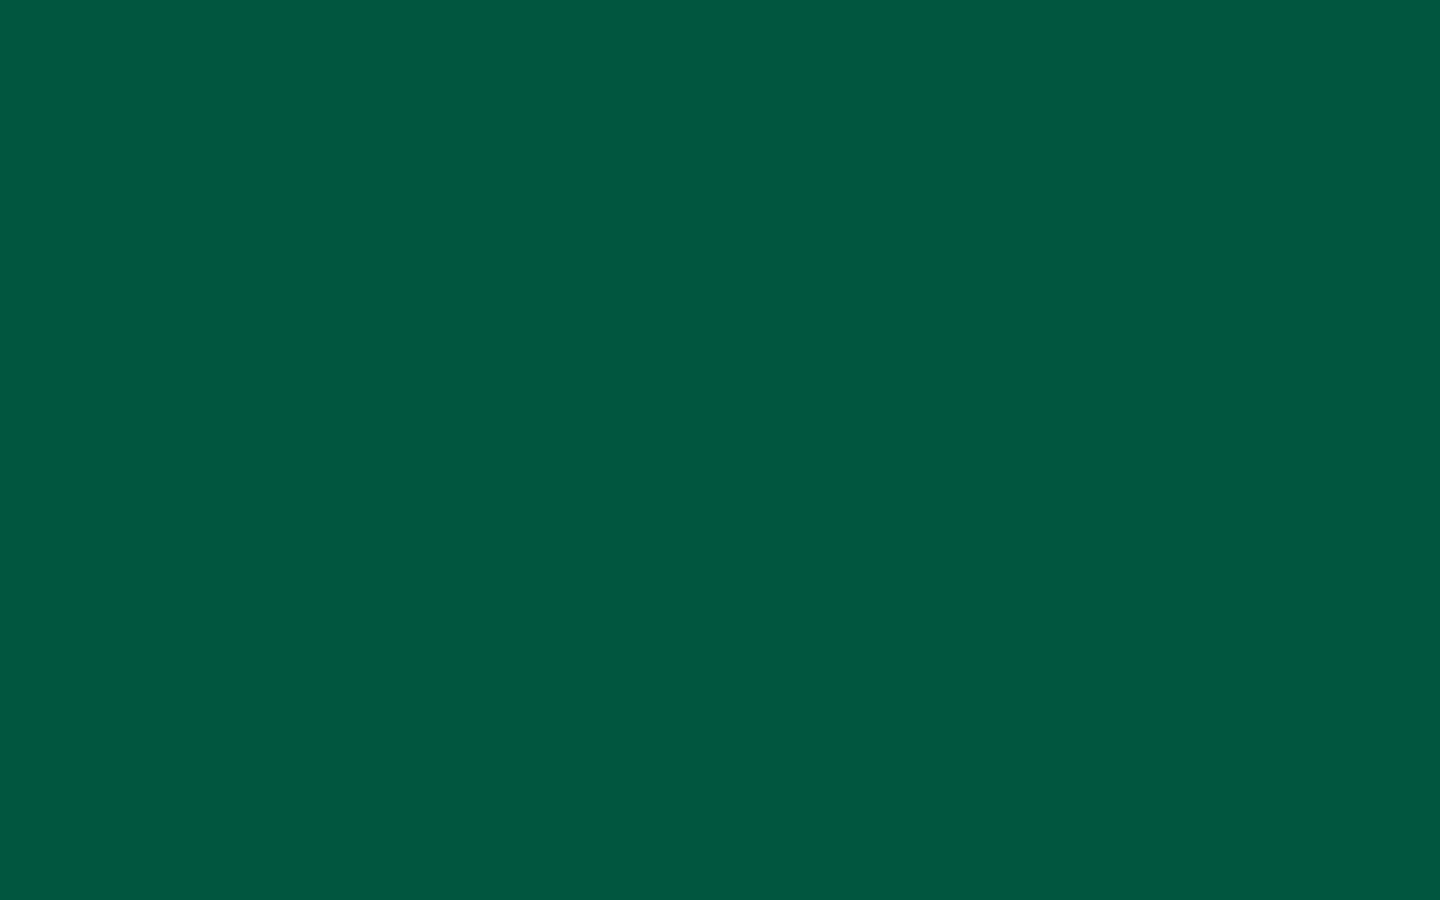 1440x900 Sacramento State Green Solid Color Background